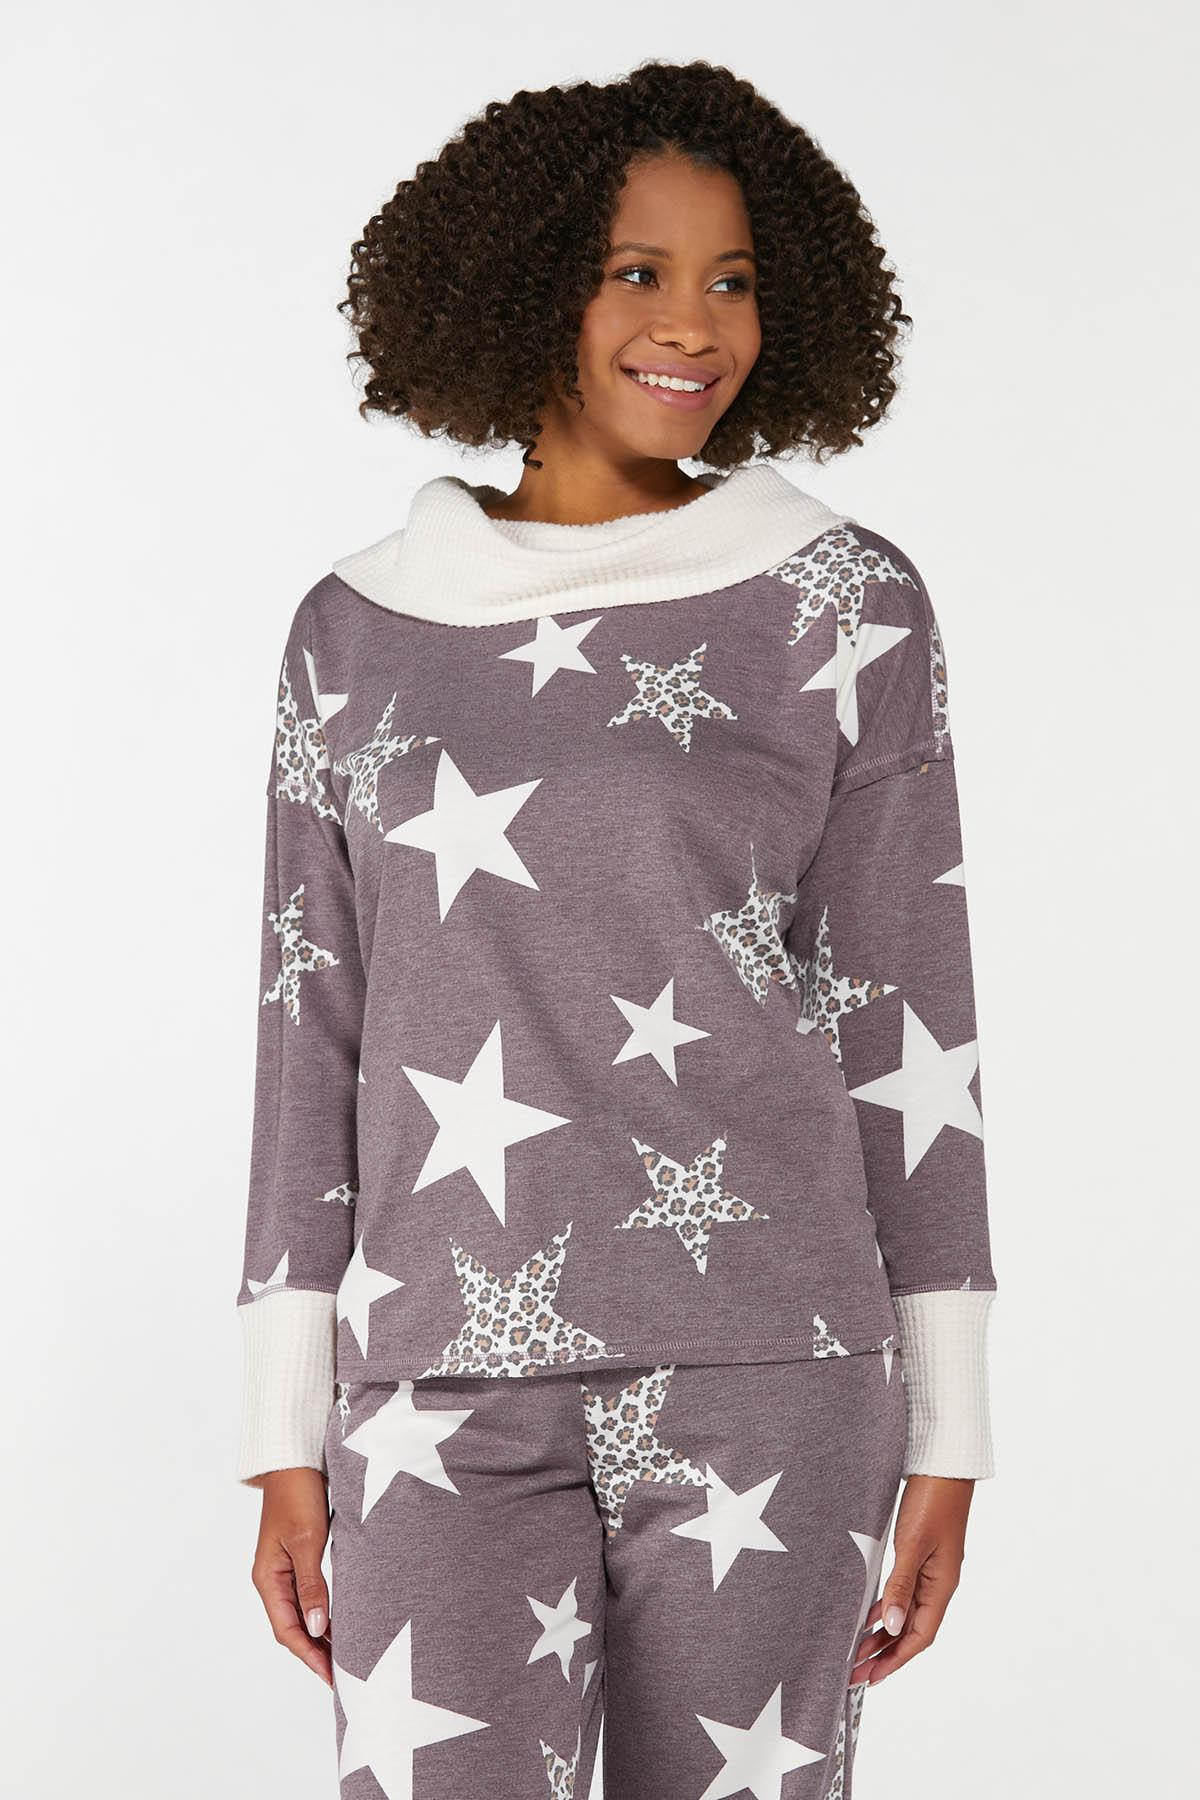 Starry Eyed Lounge Top